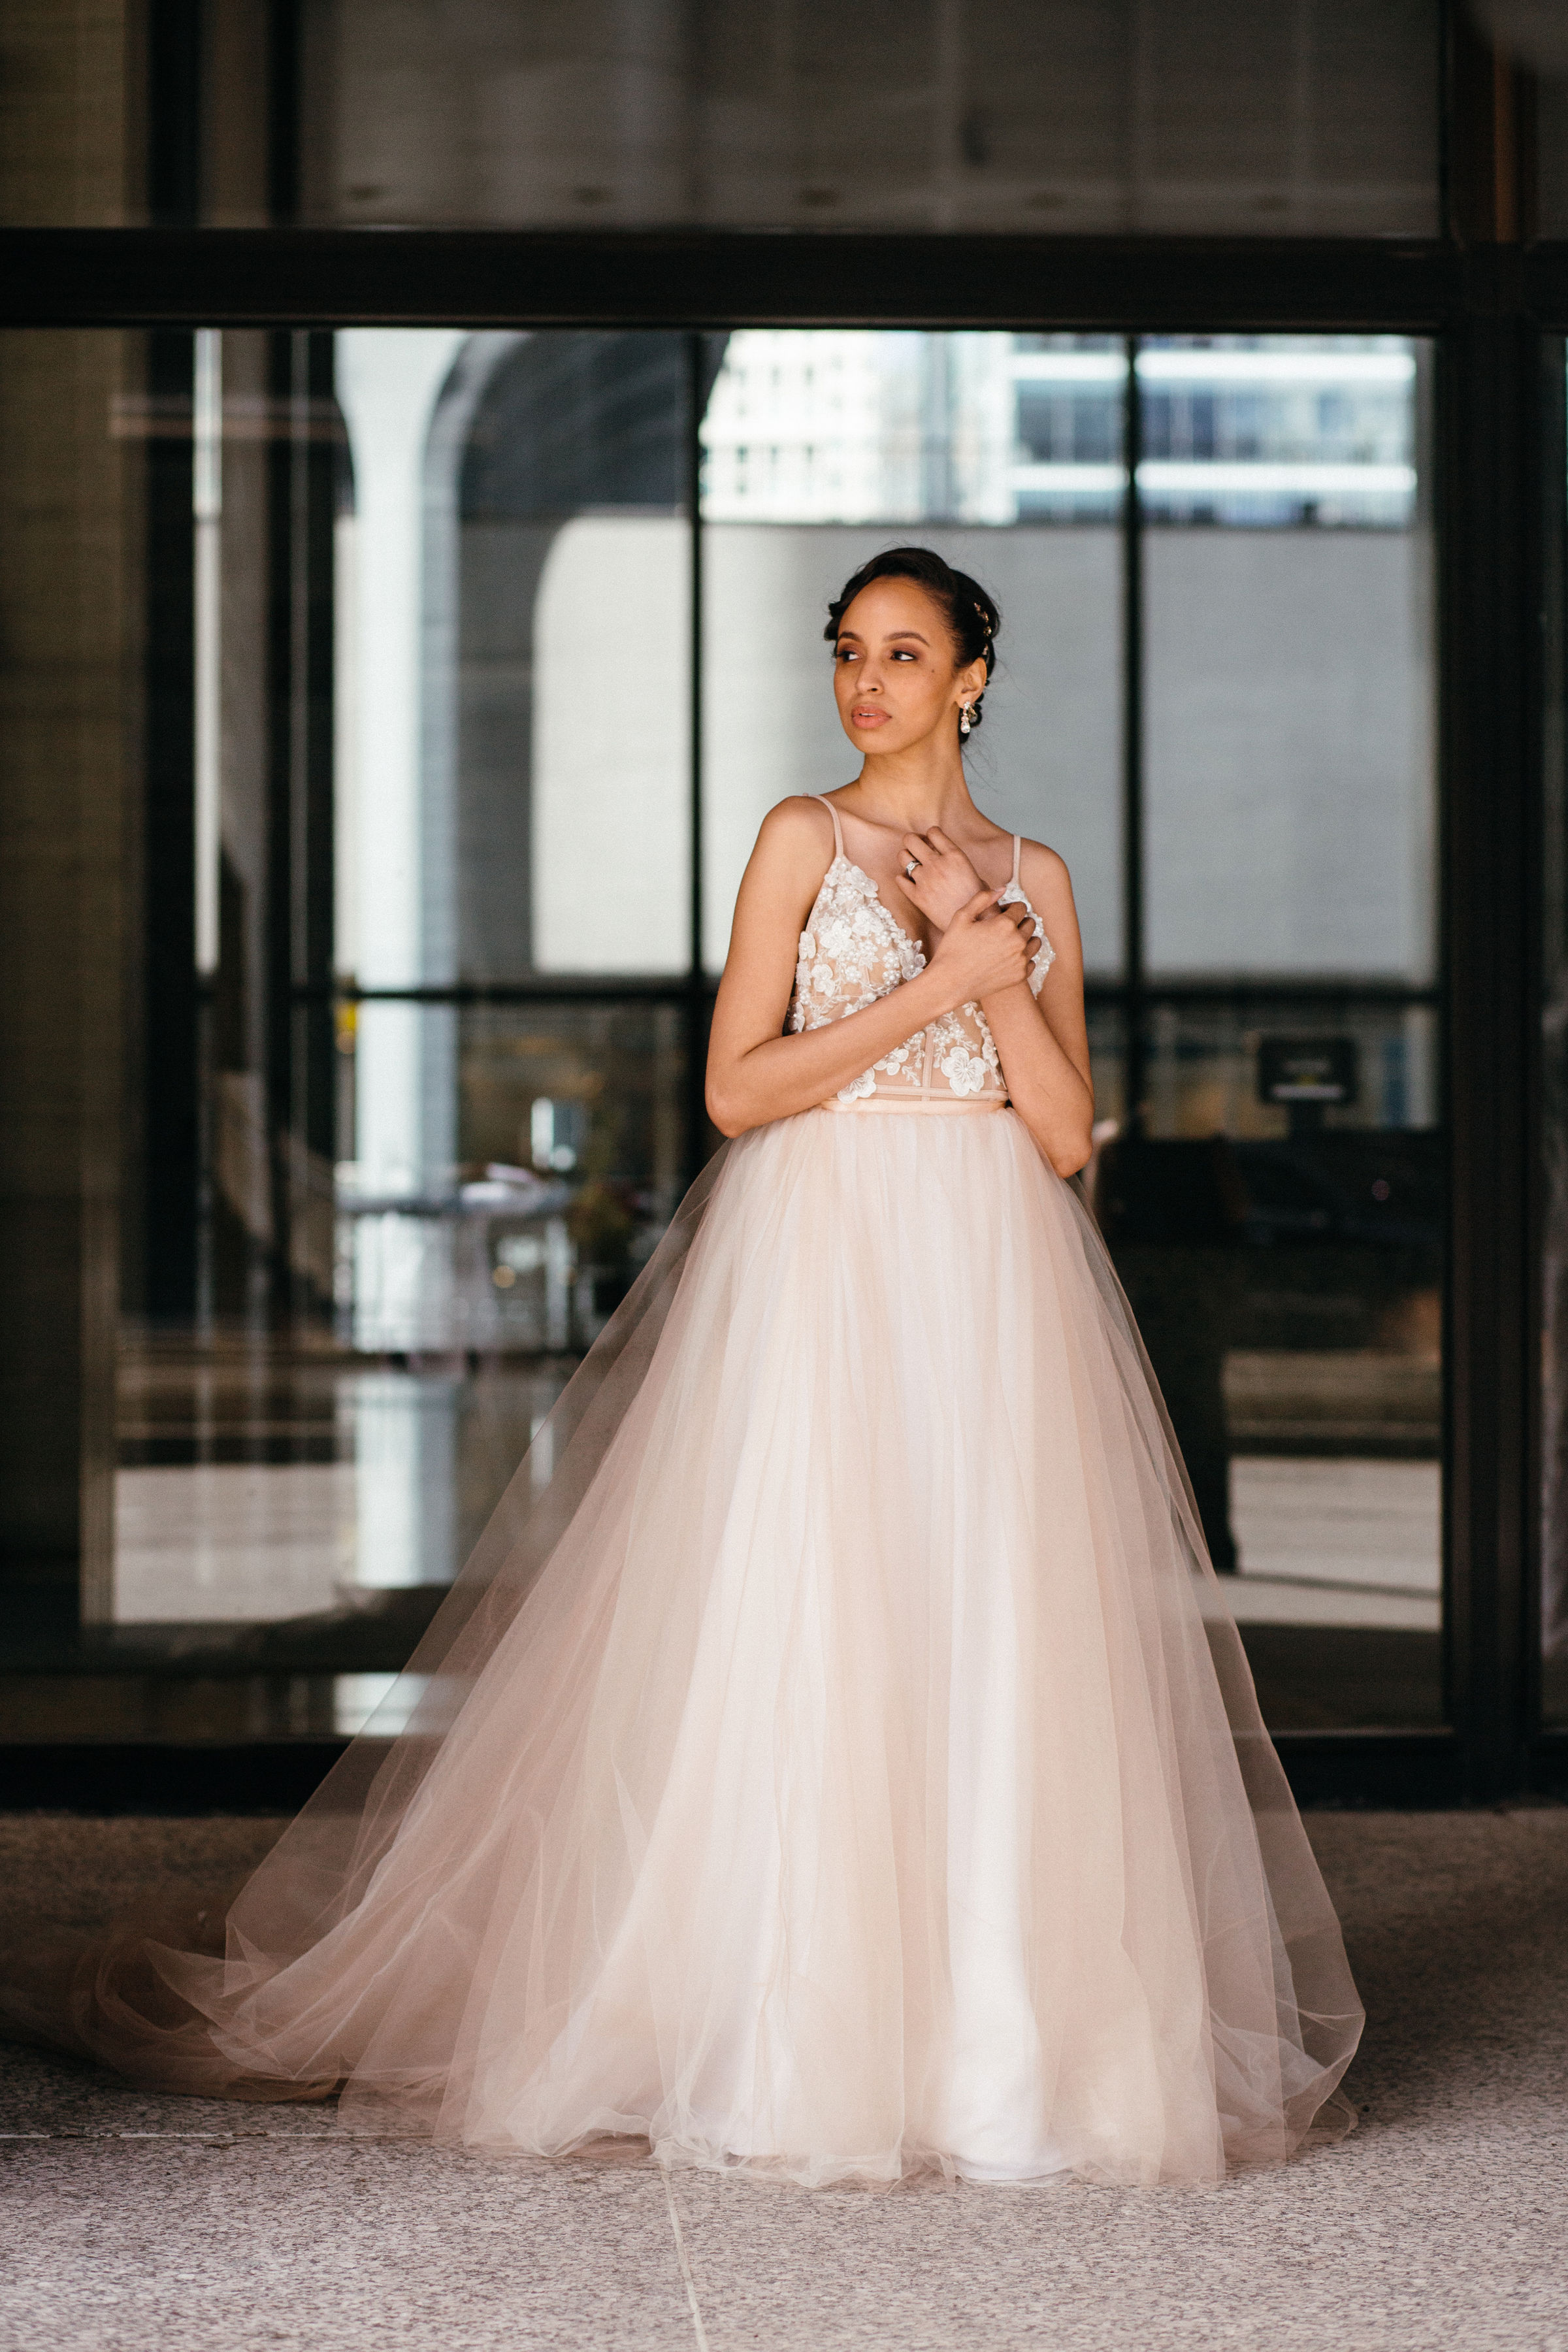 African American Bride in blush gown